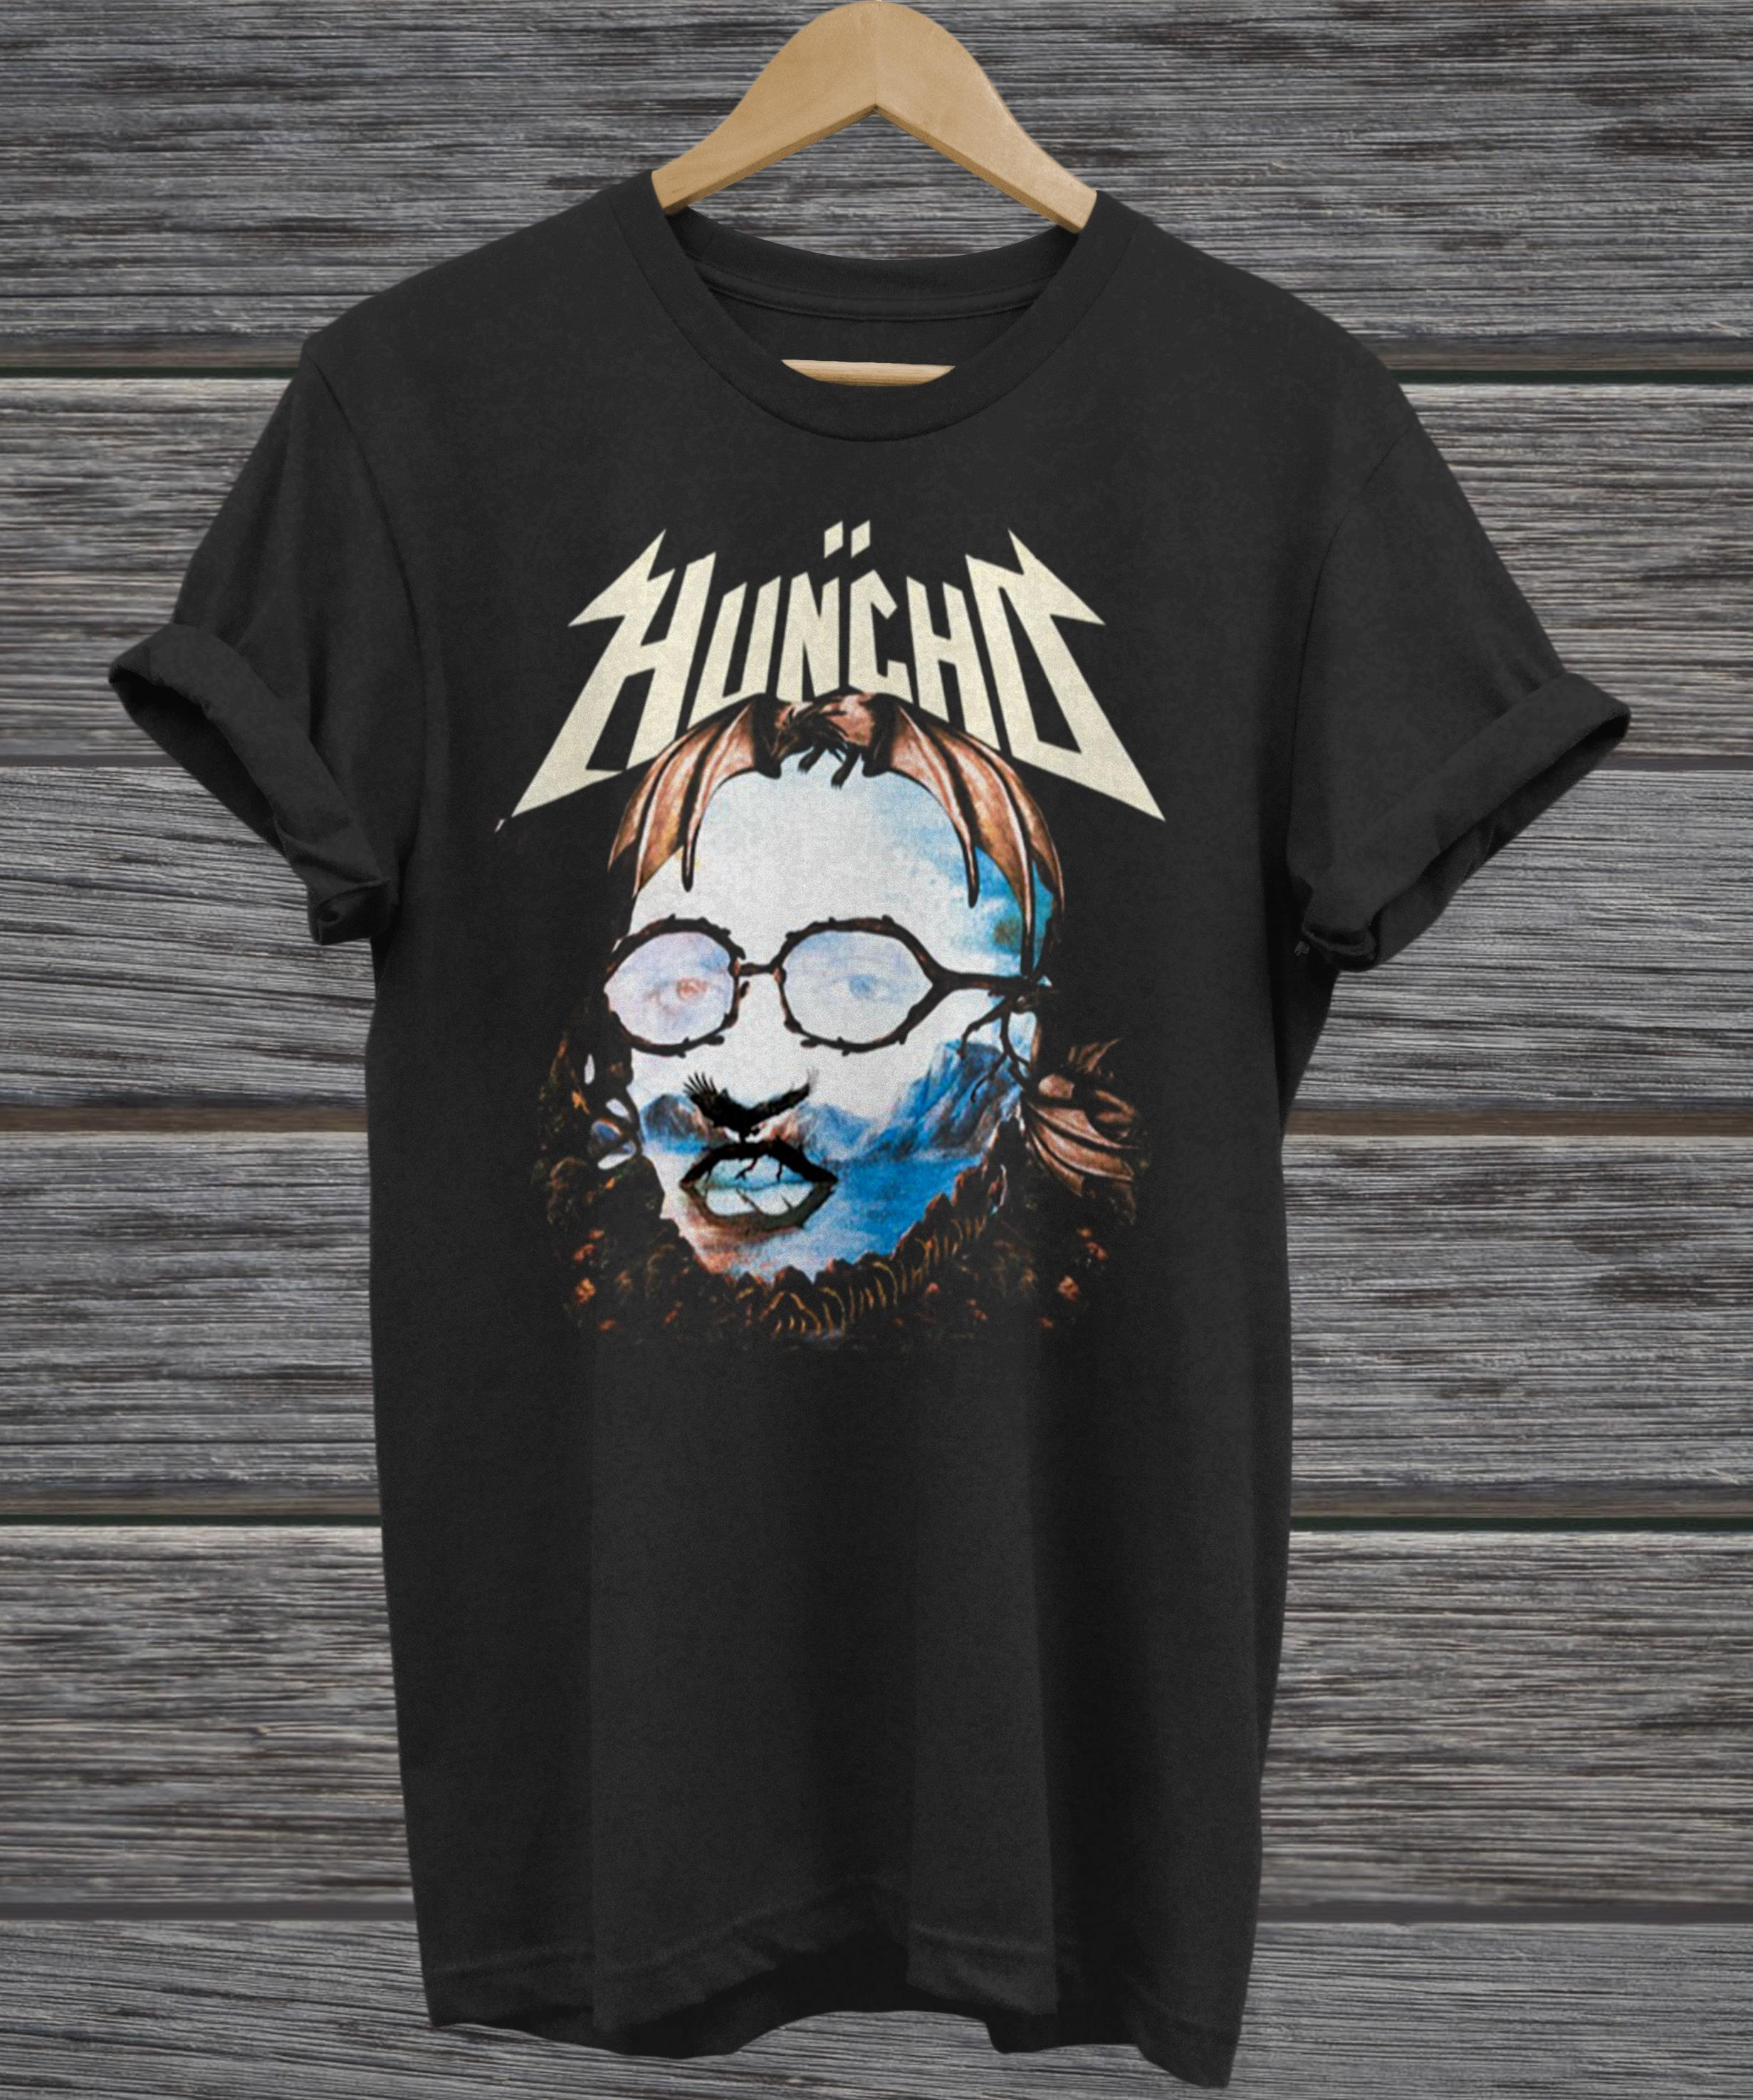 Quavo Huncho Album ladies tee